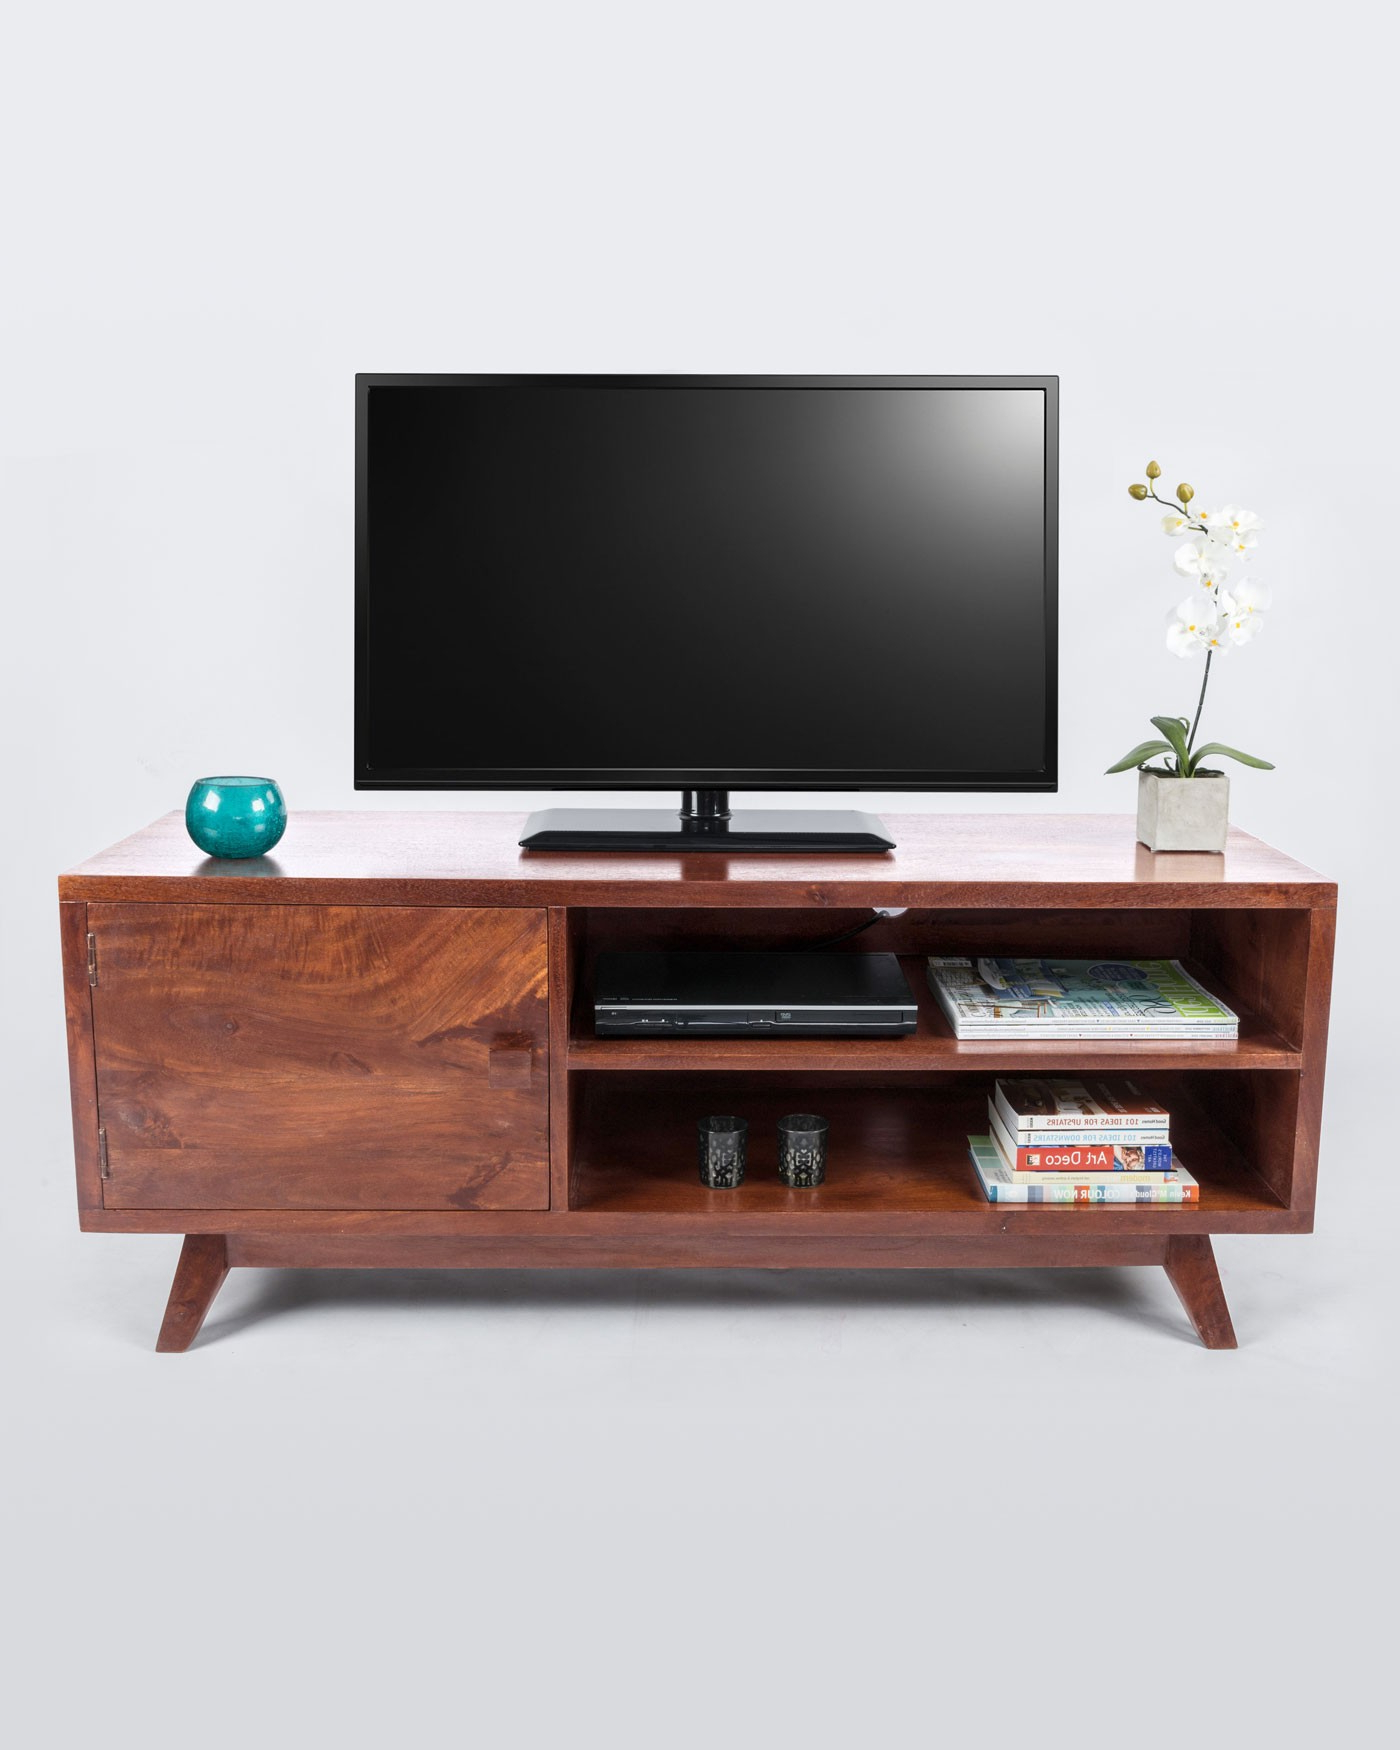 [%Dark Wood Tv Stand With Shelf Retro Design 100% Solid Wood – Homescapes With Regard To Preferred Dark Wood Tv Stands|Dark Wood Tv Stands Throughout Popular Dark Wood Tv Stand With Shelf Retro Design 100% Solid Wood – Homescapes|Trendy Dark Wood Tv Stands With Dark Wood Tv Stand With Shelf Retro Design 100% Solid Wood – Homescapes|Favorite Dark Wood Tv Stand With Shelf Retro Design 100% Solid Wood – Homescapes Intended For Dark Wood Tv Stands%] (View 1 of 20)